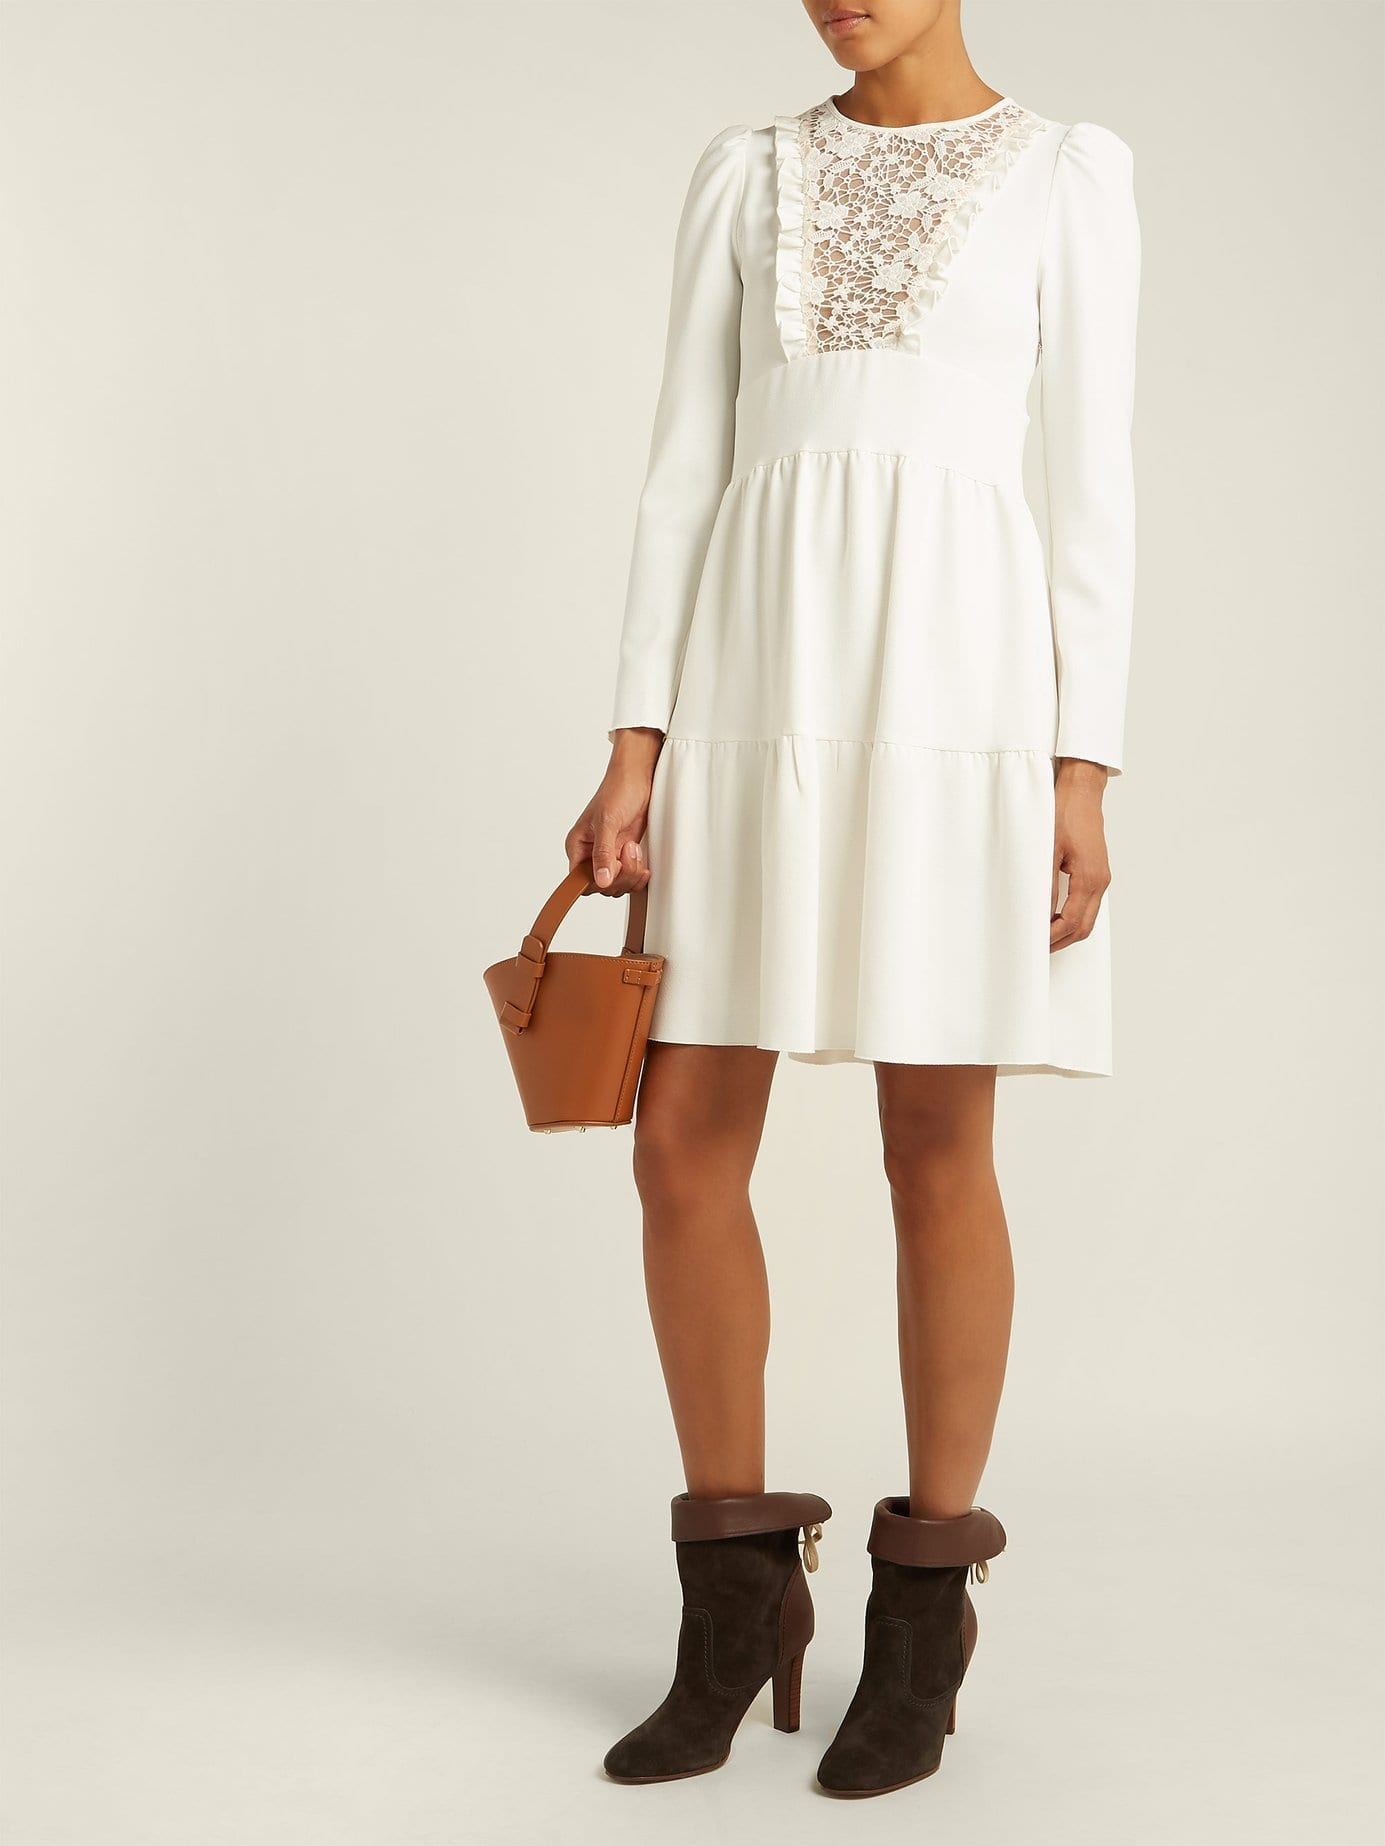 SEE BY CHLOÉ Lace Crêpe White Dress